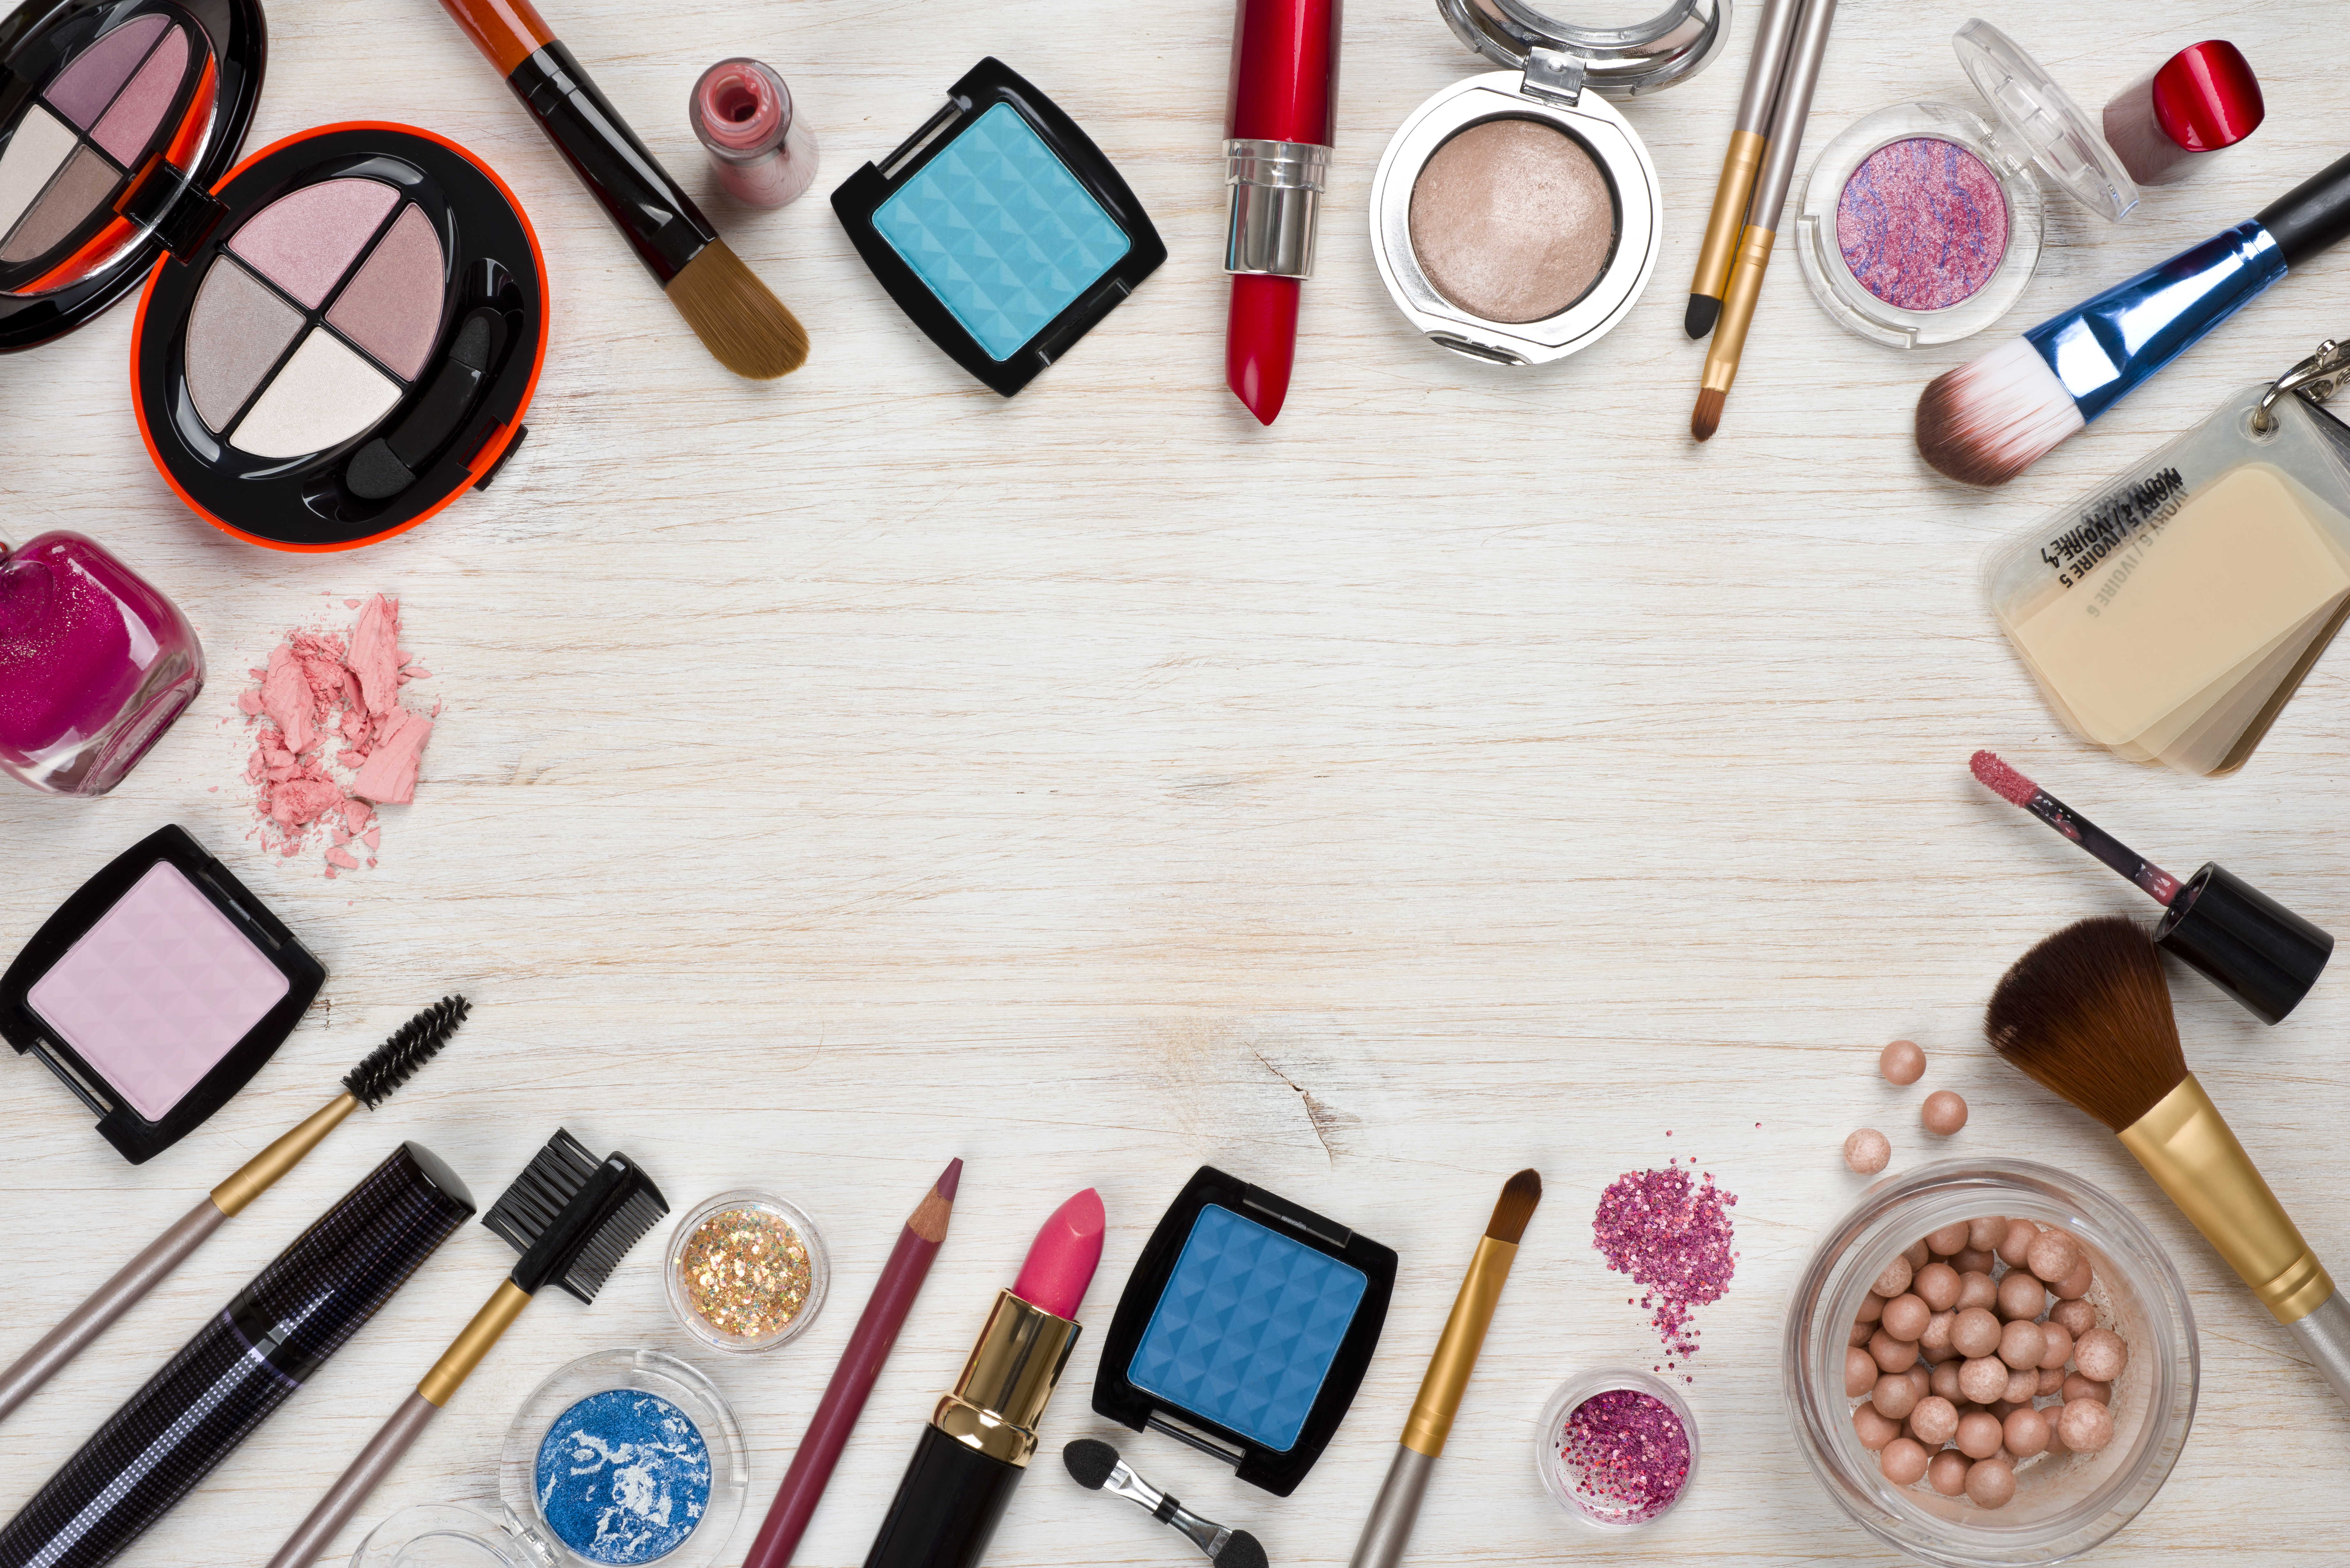 tabs analytics releases third annual beauty study